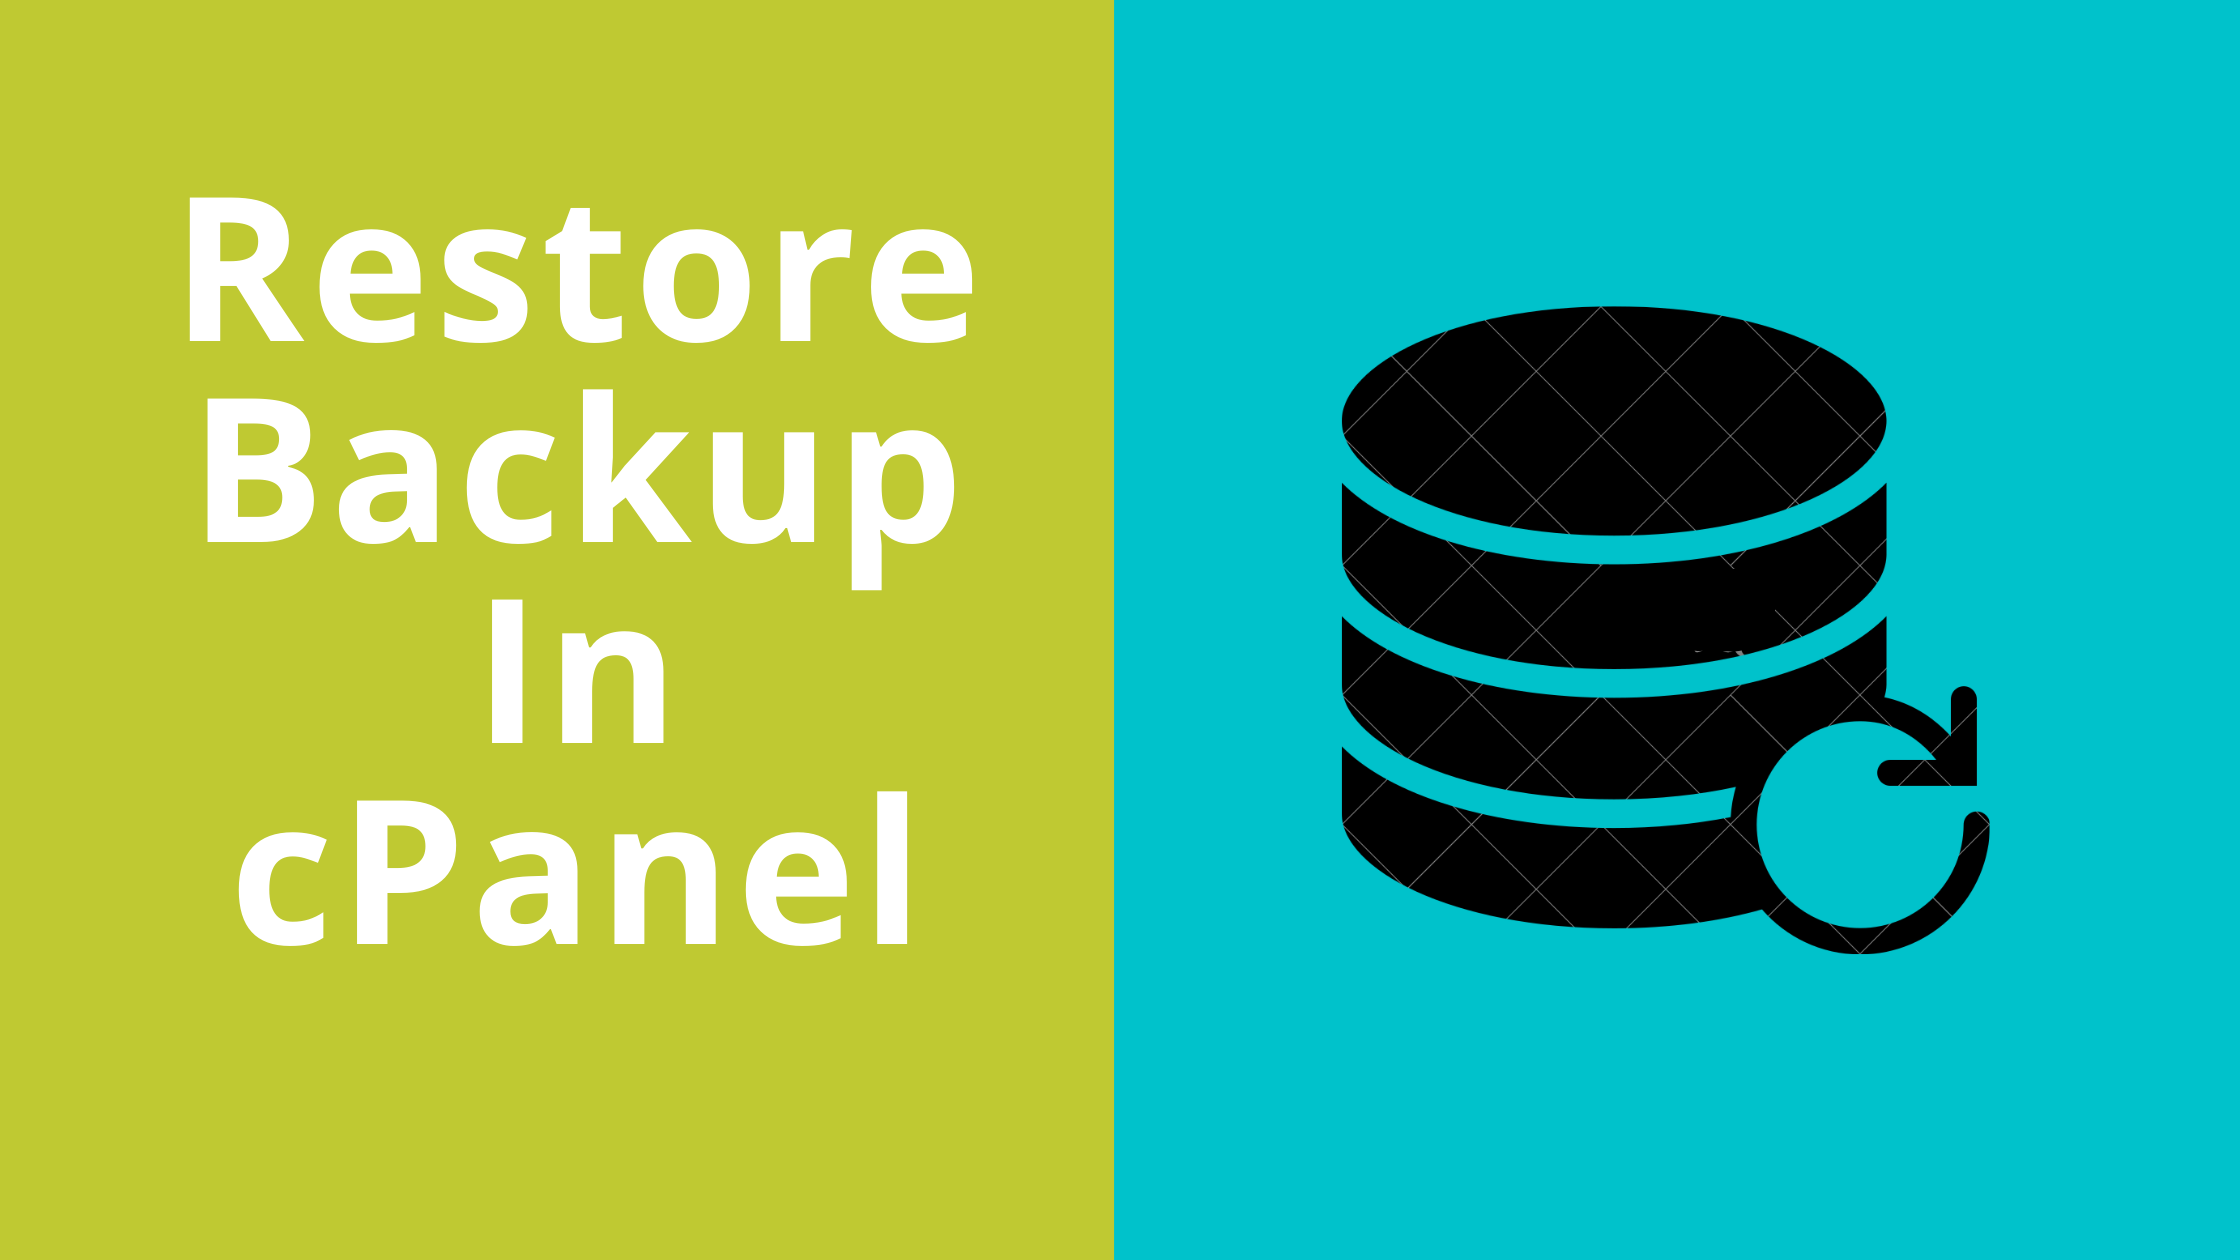 Restore Backup in cPanel